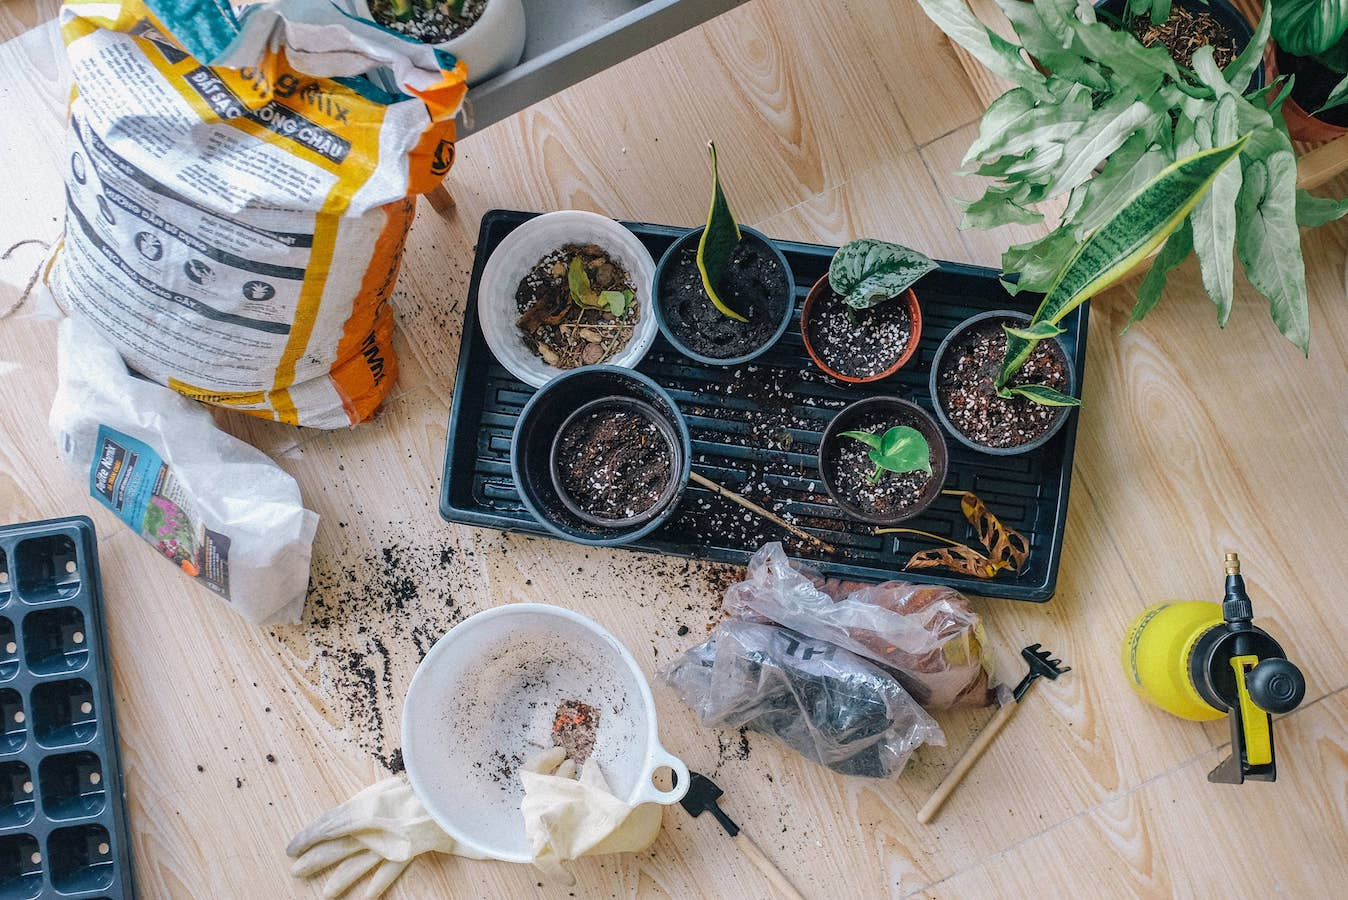 Can plants stay in plastic pots? Changing soil and containers in plants on a table.